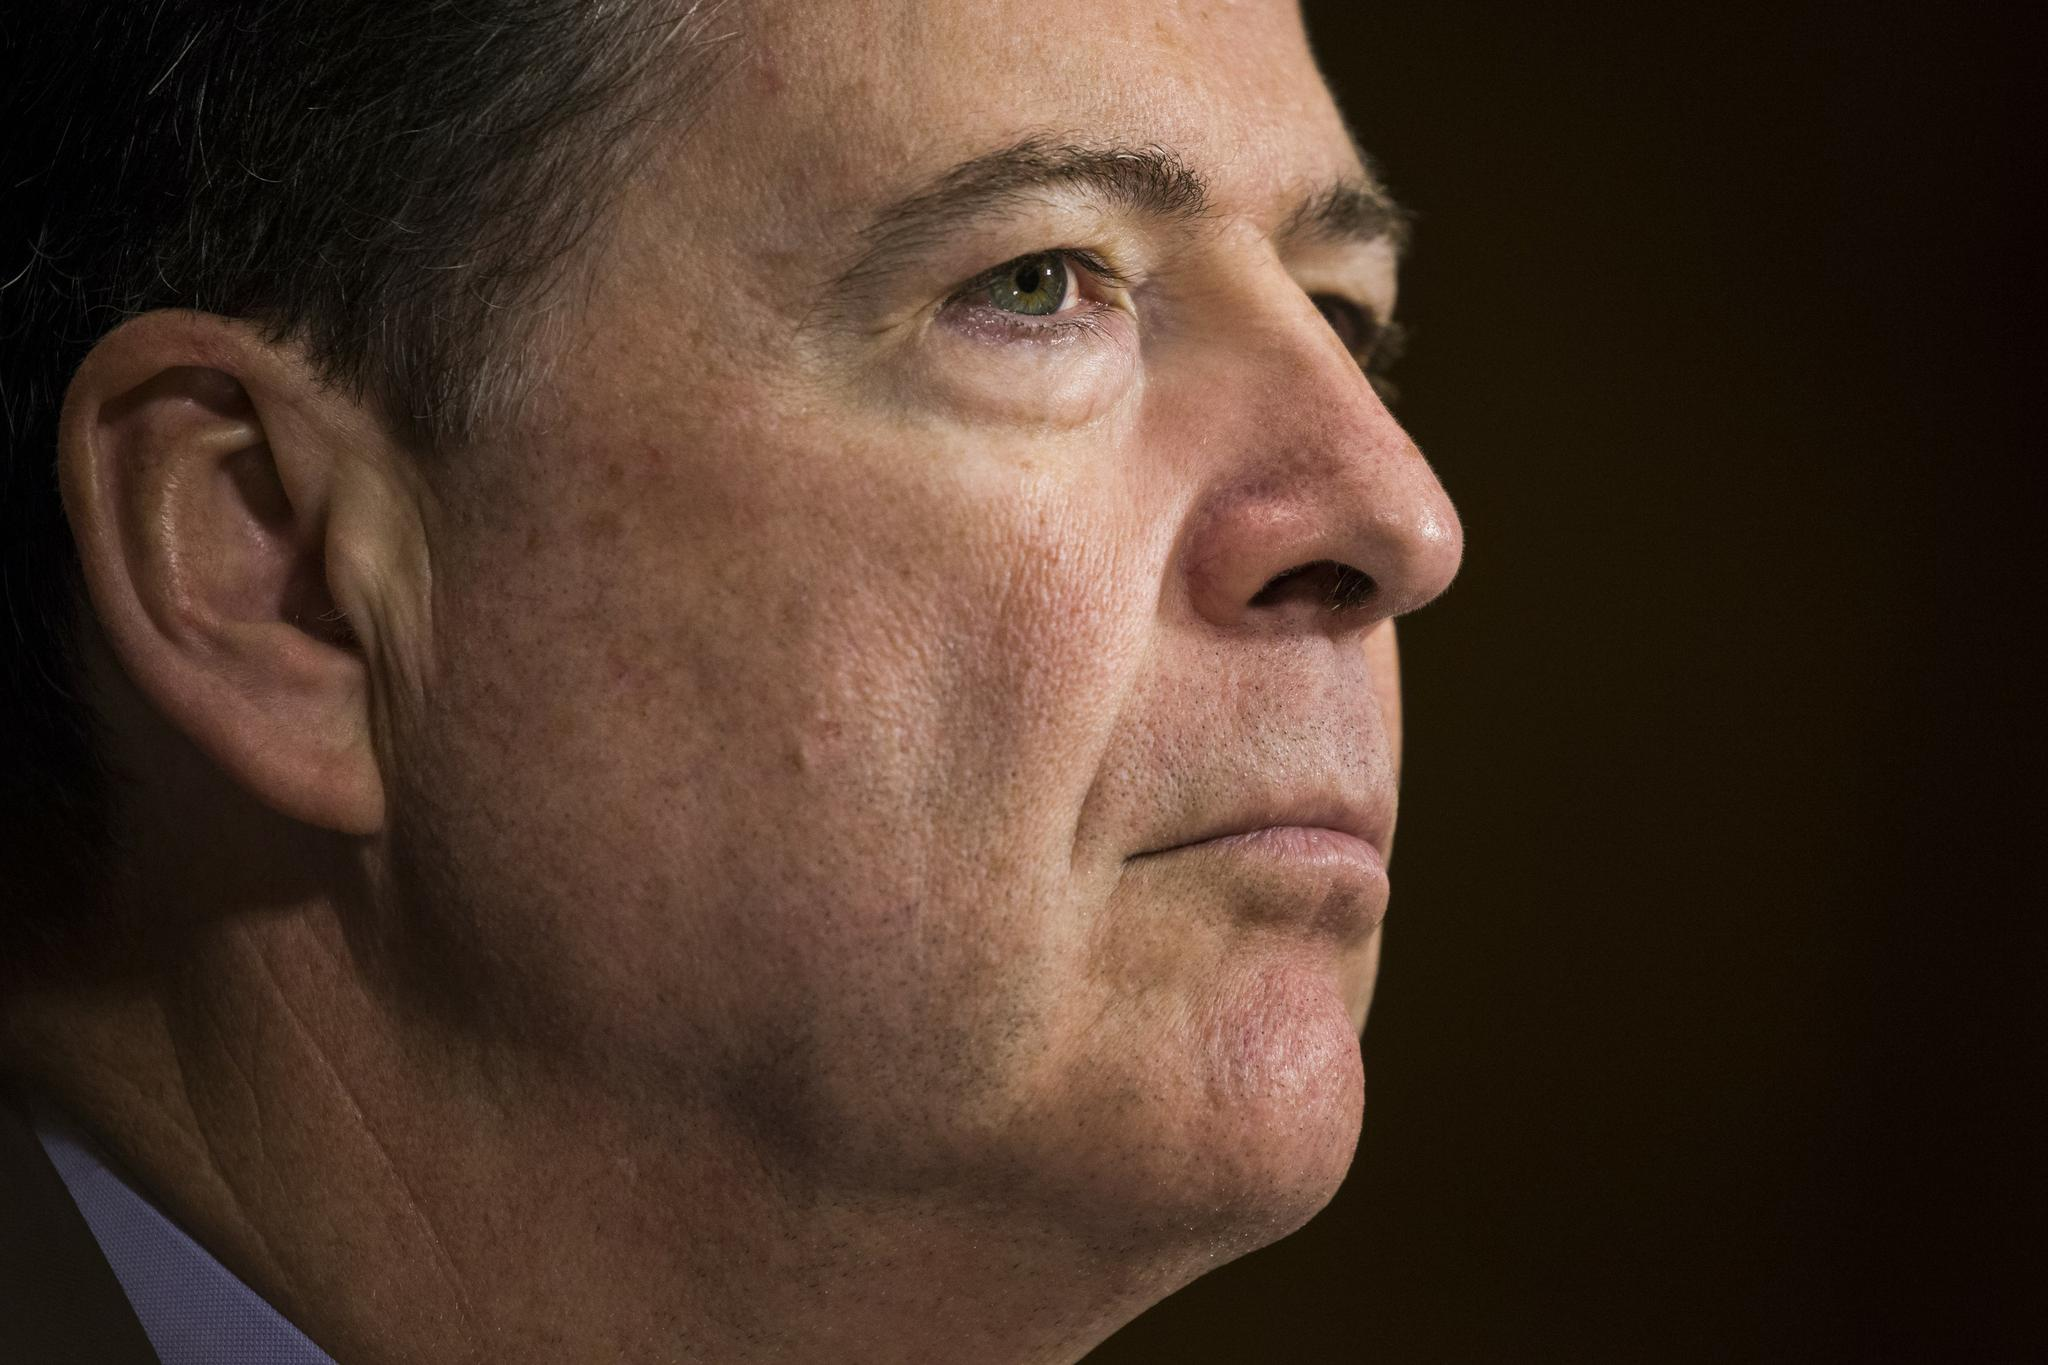 FBI Director James Comey testifies before the Senate Judiciary Committee at the U.S. Capitol in Washington, D.C. on May 3.